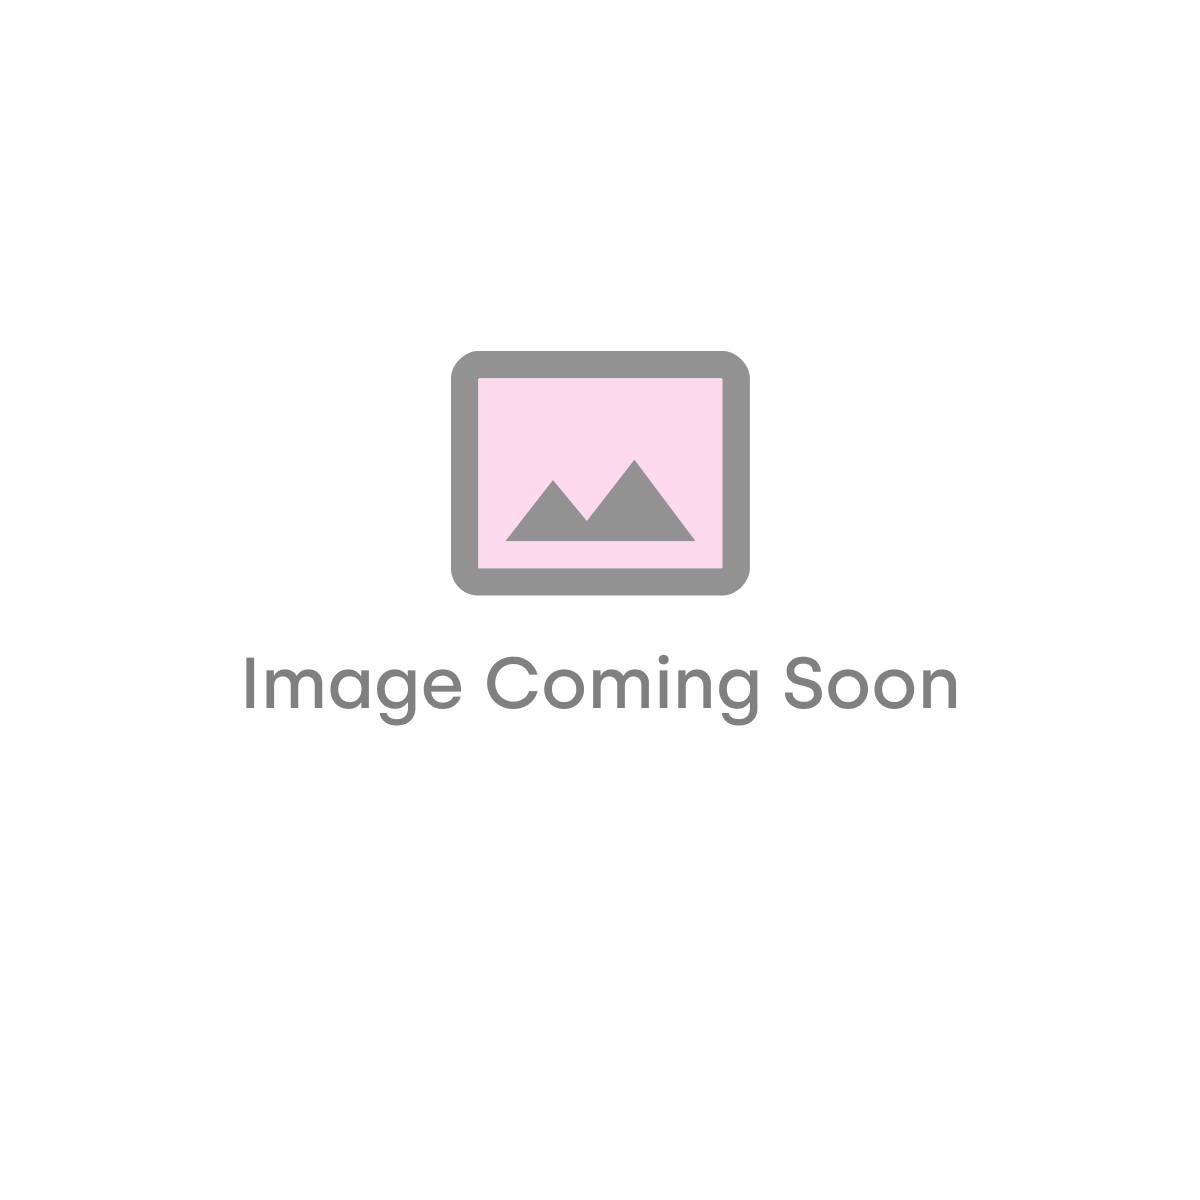 Haceka Kosmos Metal Soap Dispenser - 10698